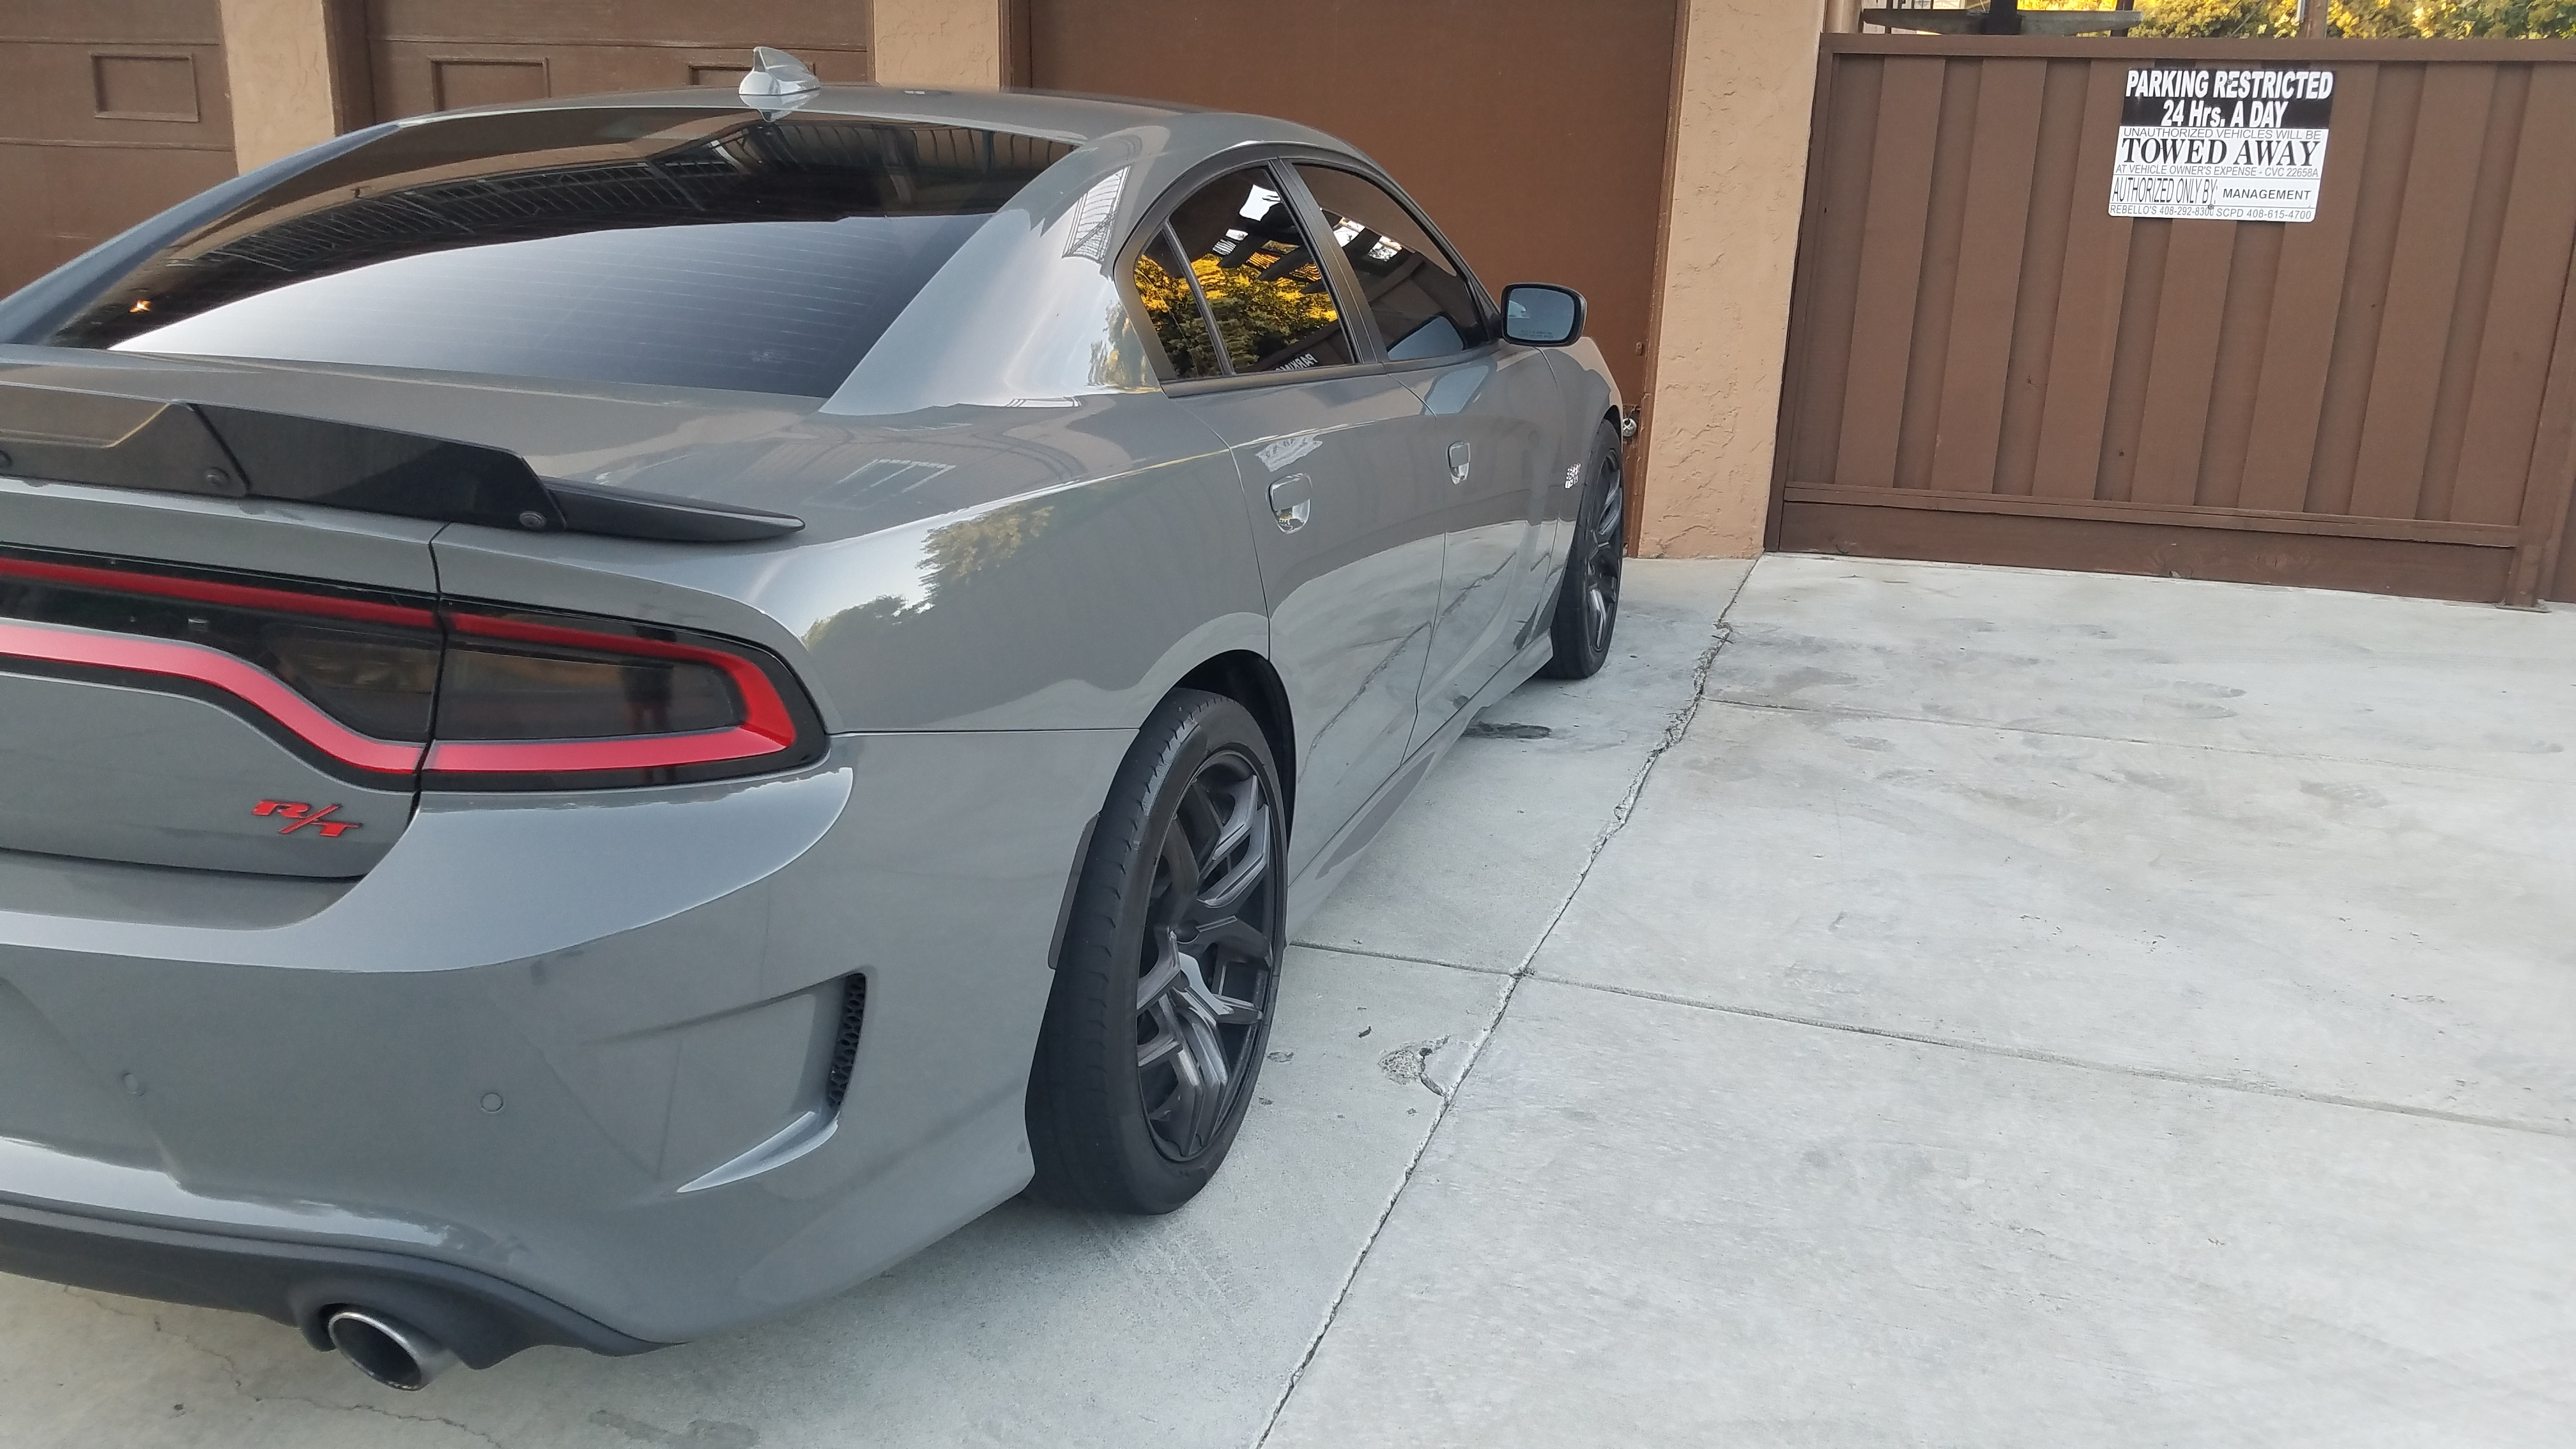 2018 Dodge Charger R/T Scat Pack - Angular Rear View